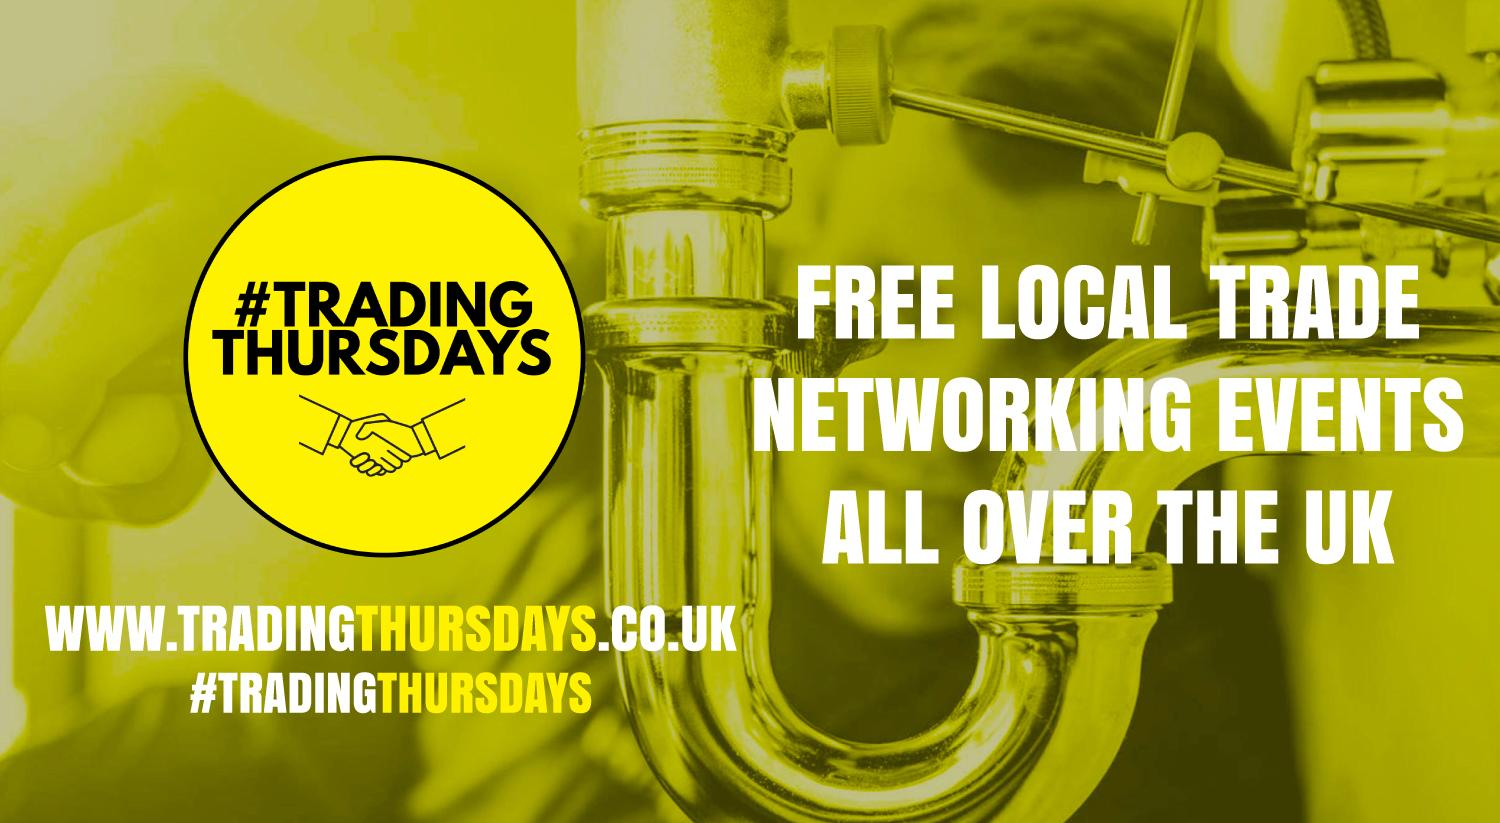 Trading Thursdays! Free networking event for traders in Beeston